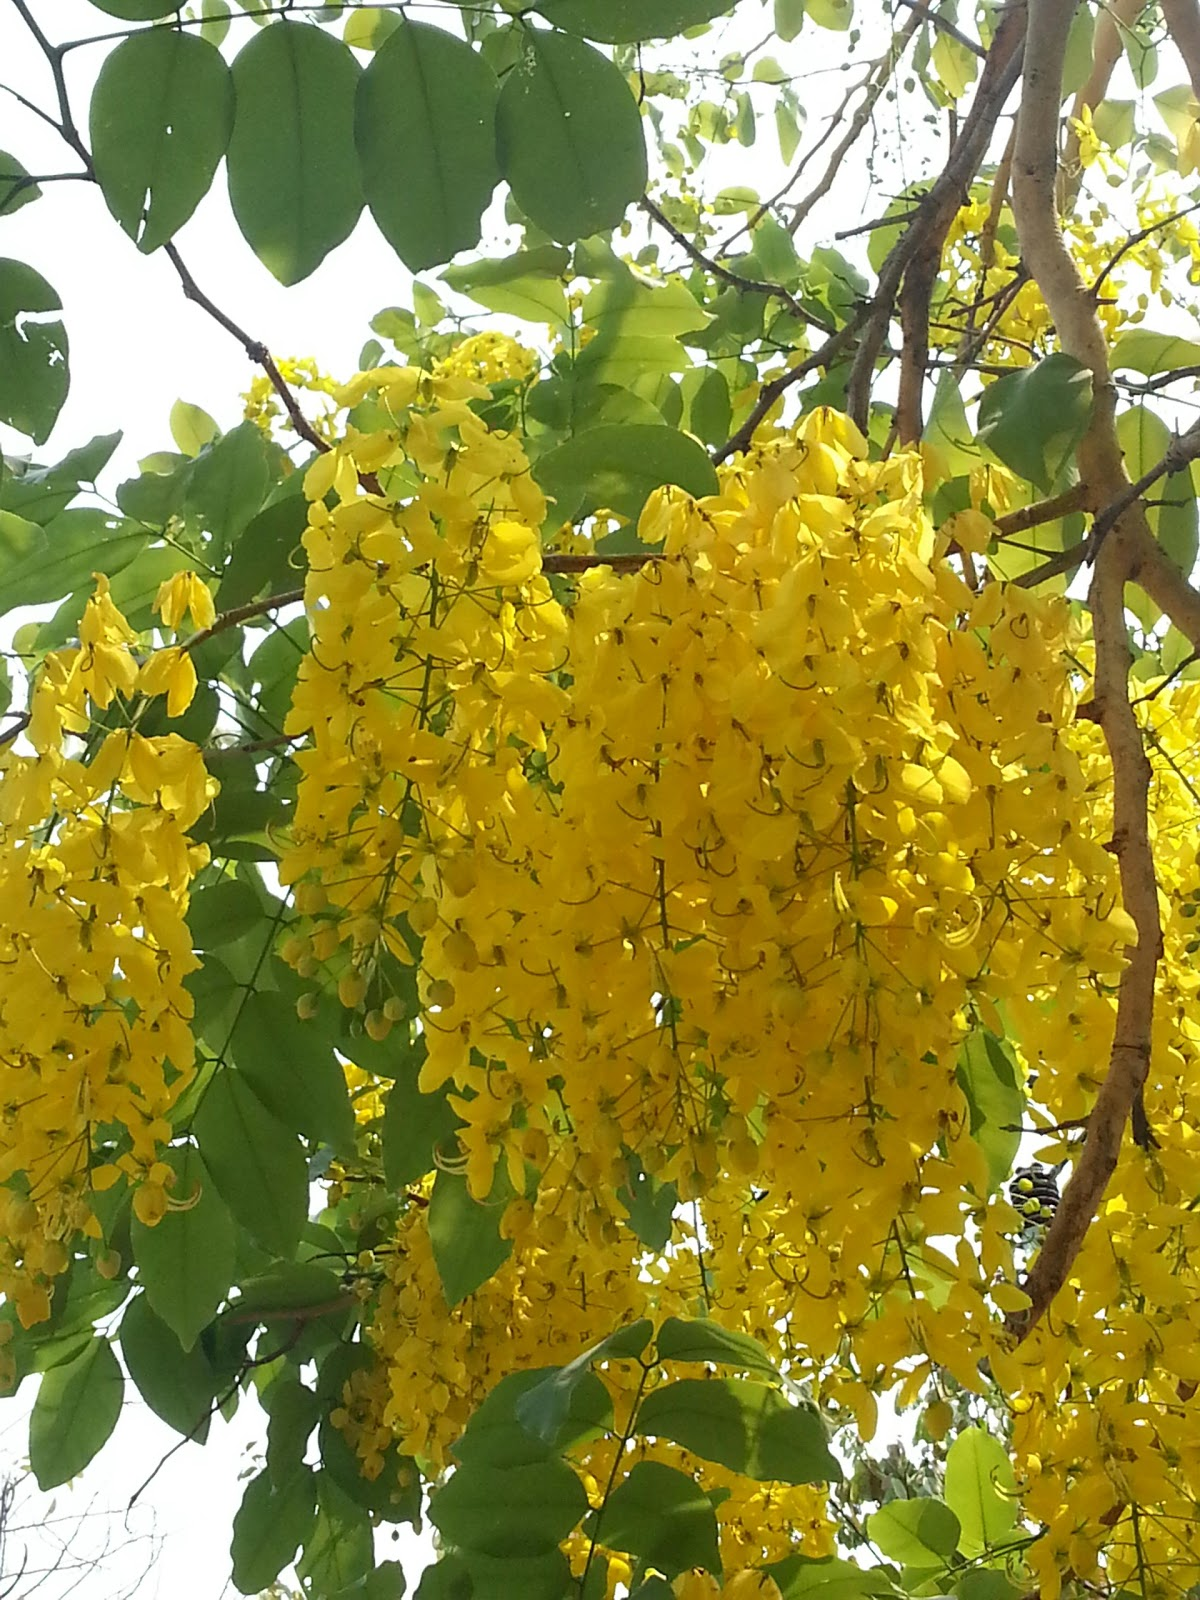 Travels In Laos And Isaan When The Golden Shower Tree Blooms